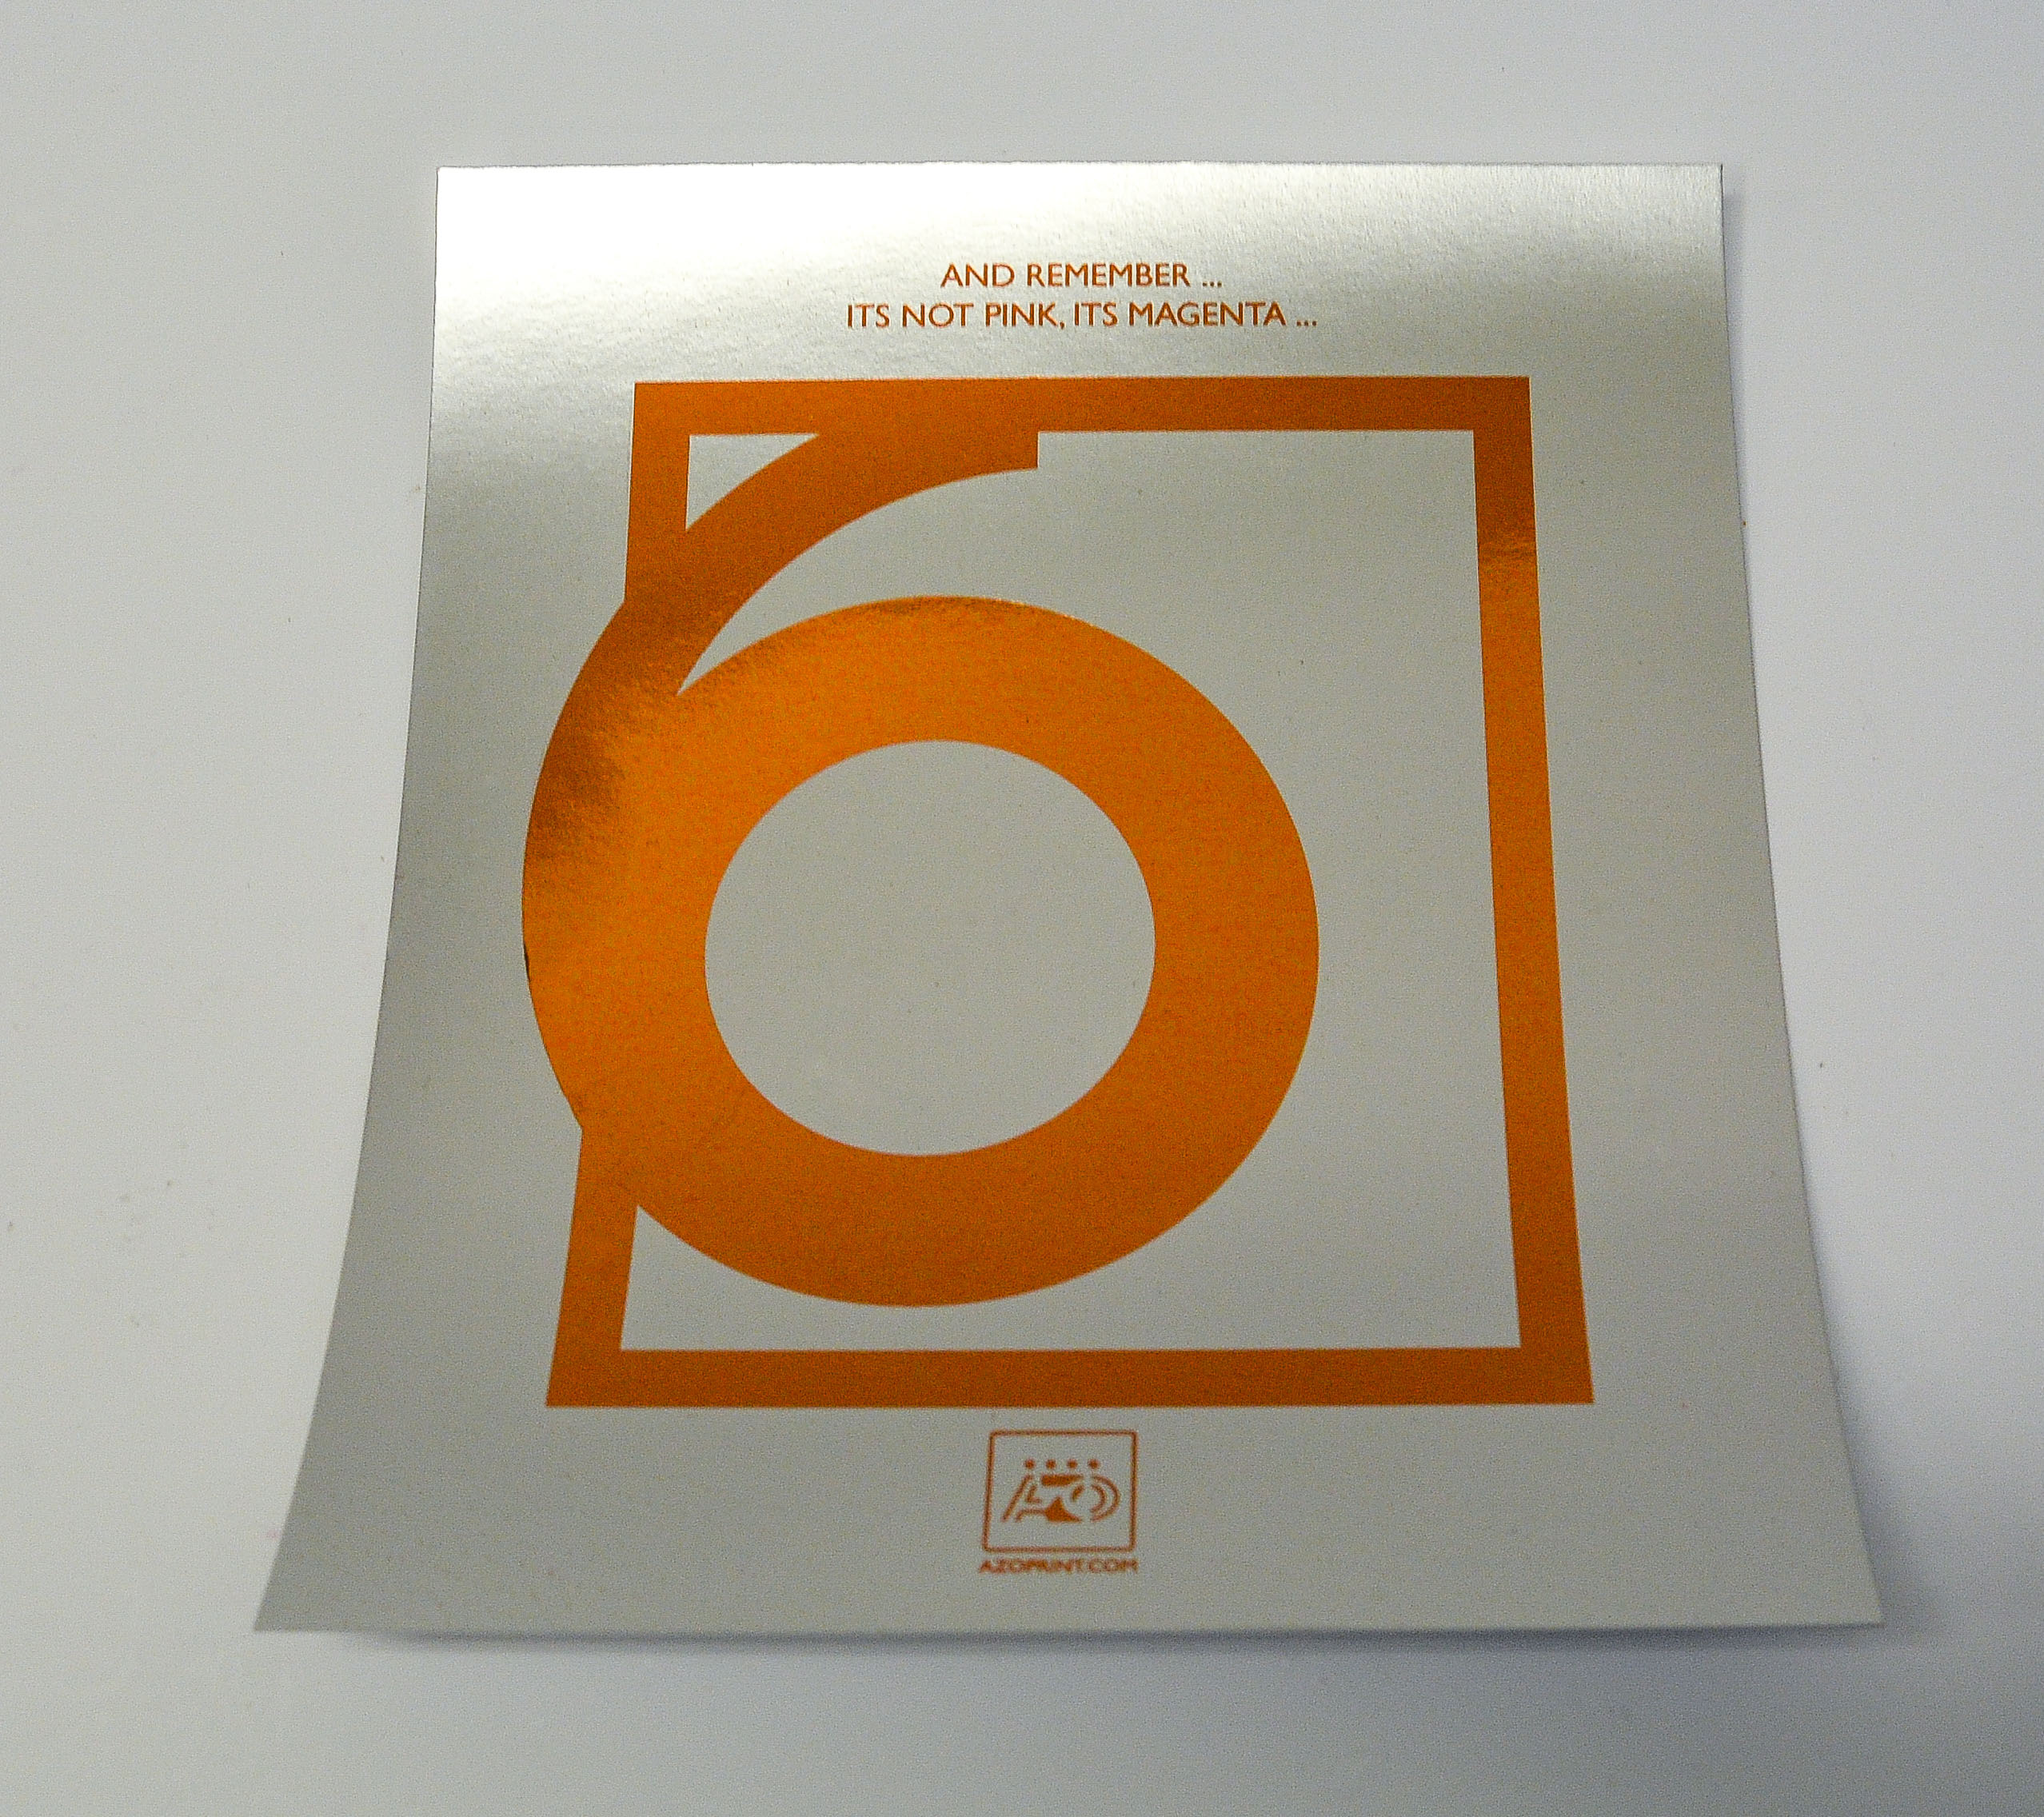 Orange foil on silver laminate